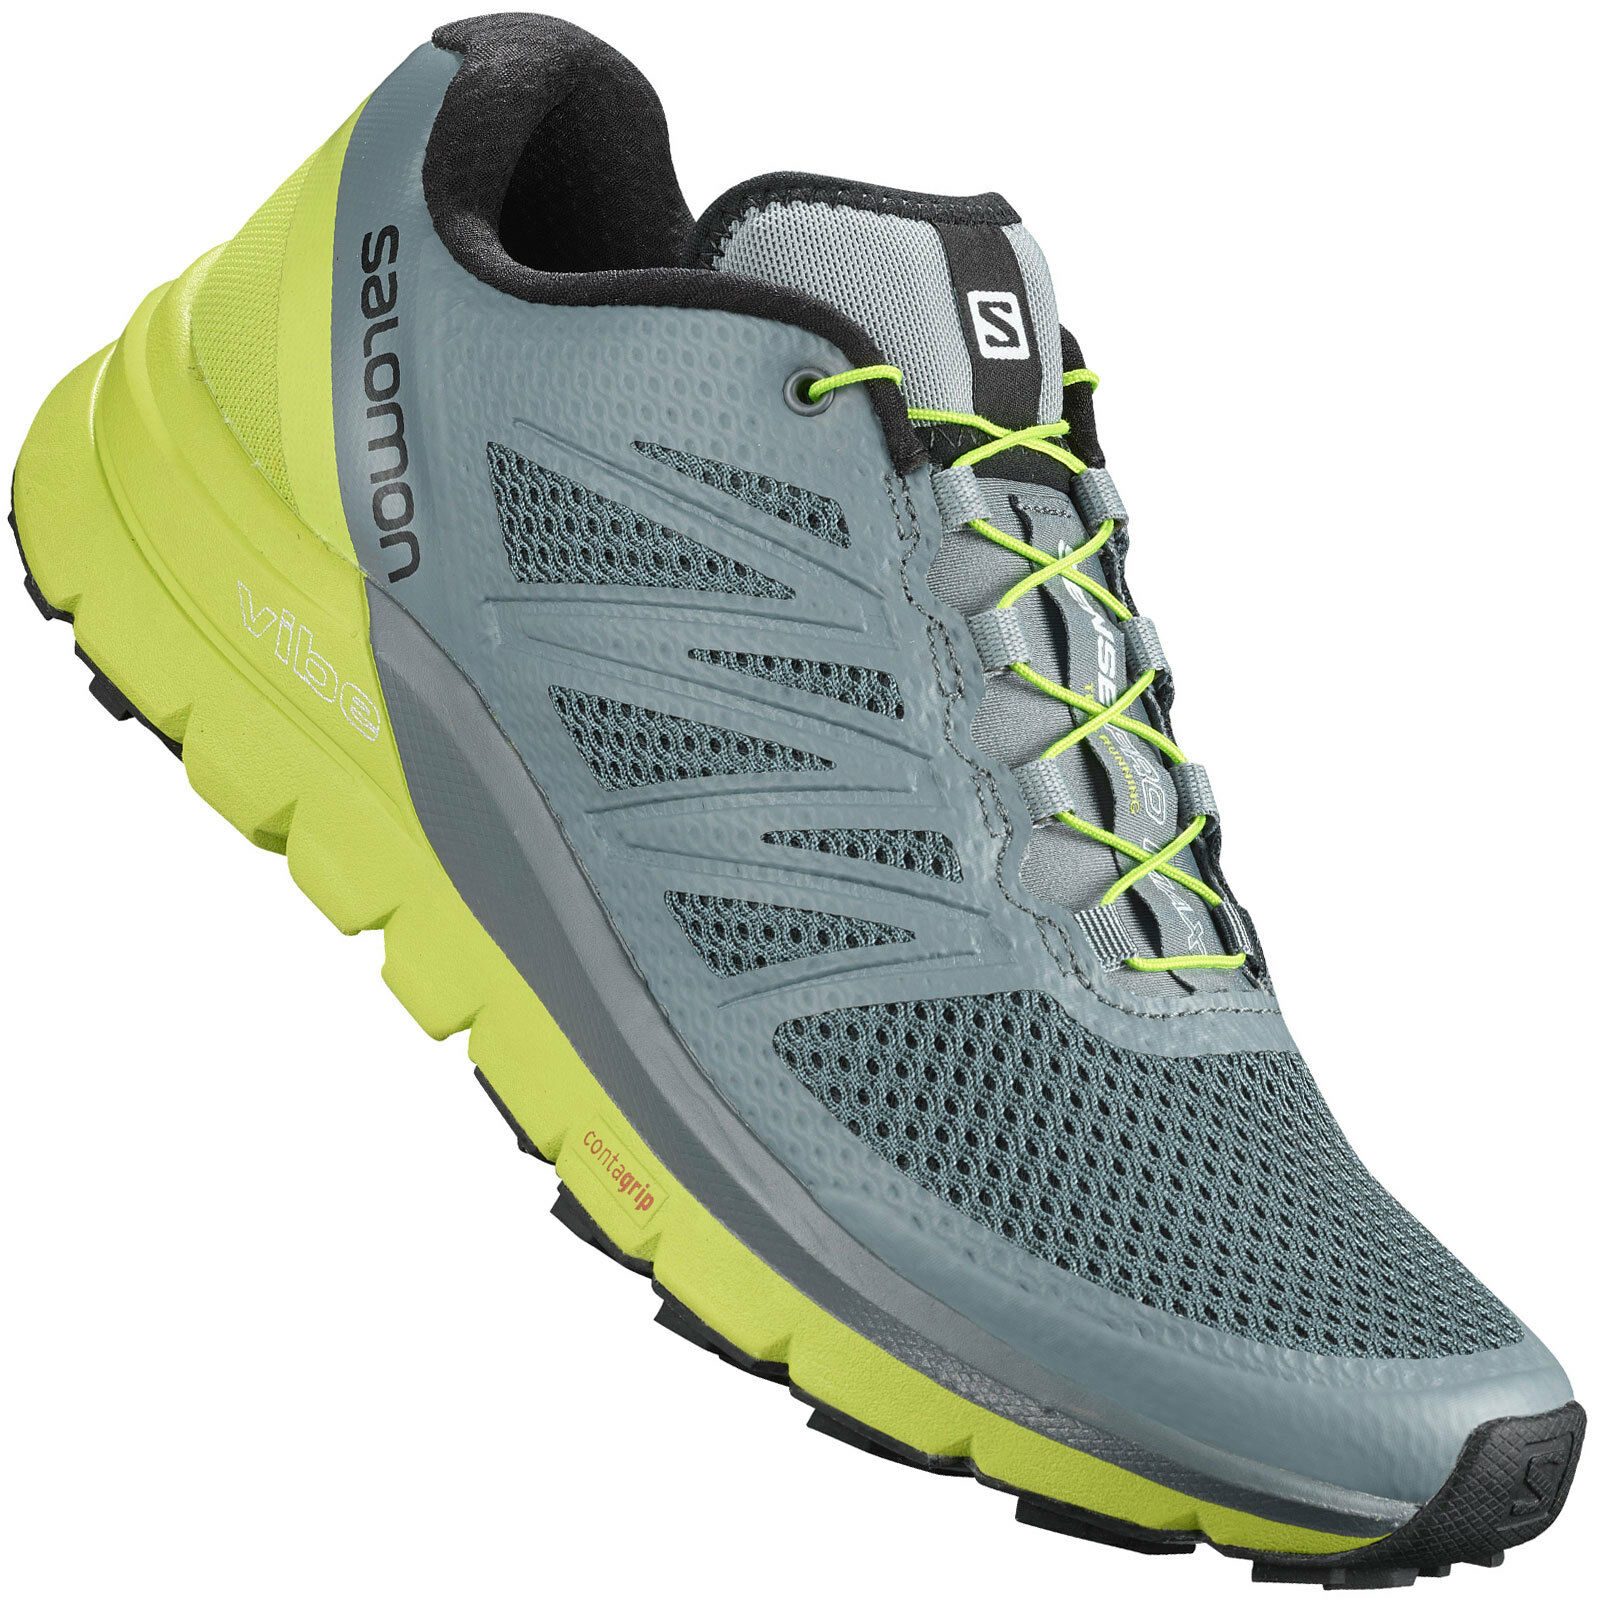 Salomon Sense pro Max Men's Running shoes Trainers Trail Running Outdoor shoes